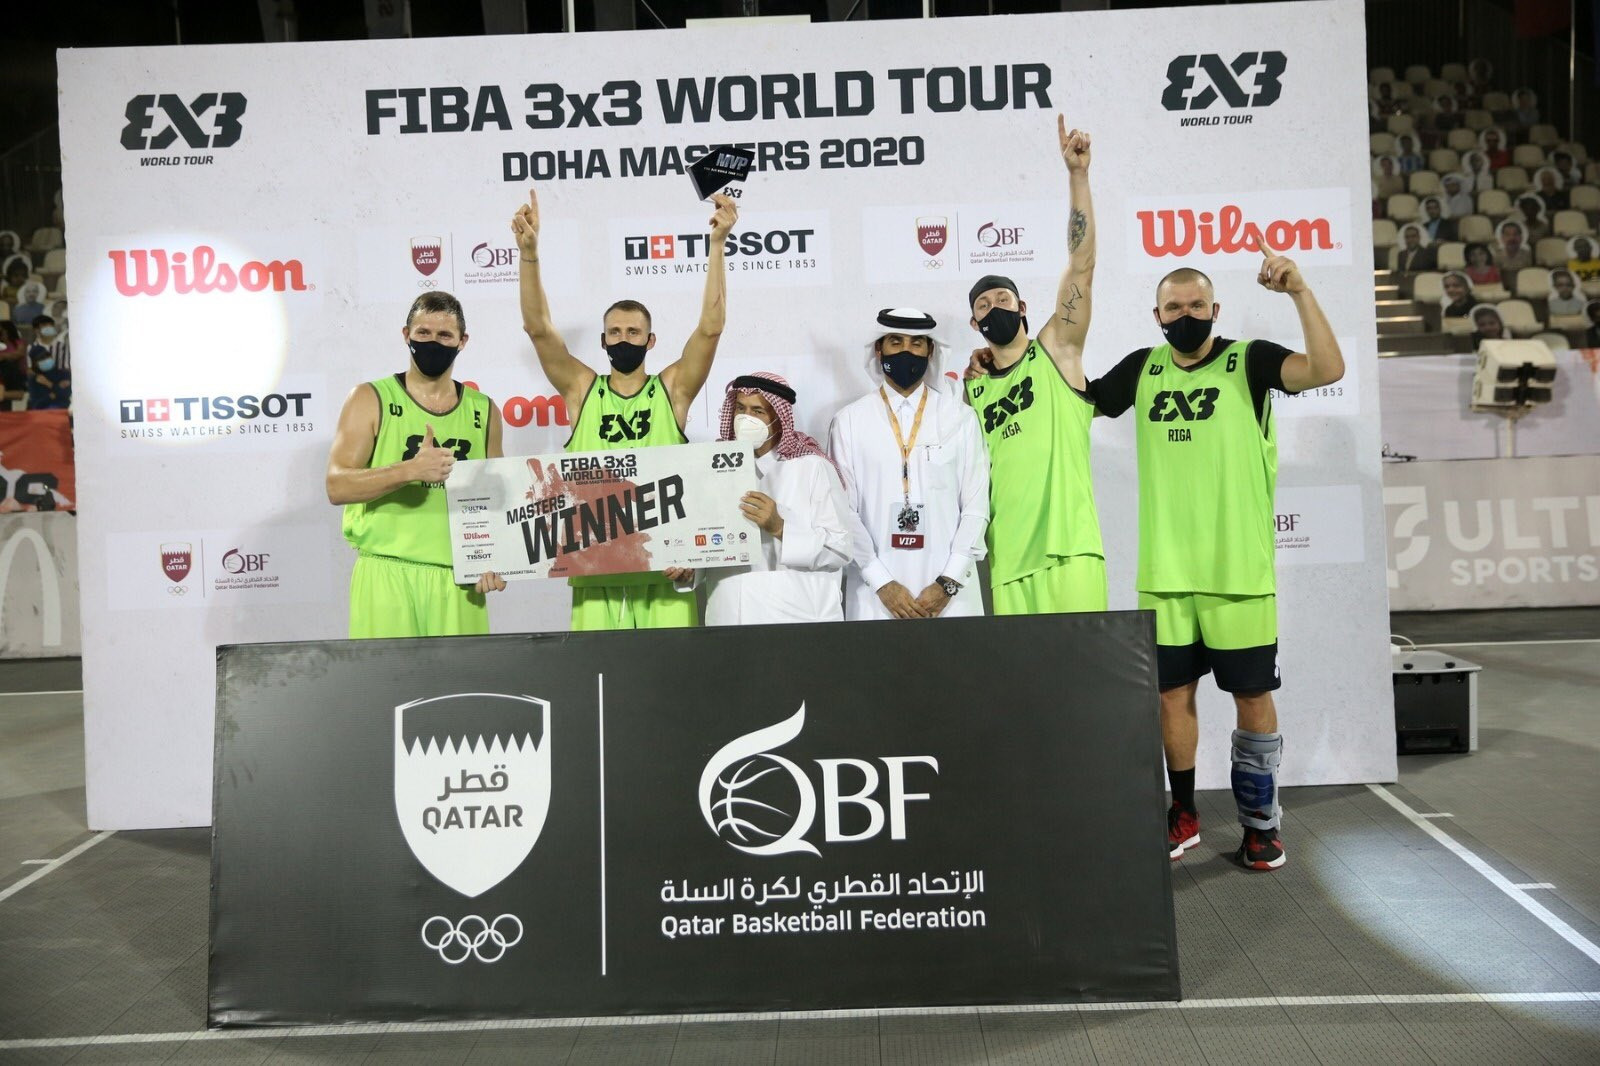 Riga retain 3x3 World Tour Doha Masters title with dramatic win over Liman